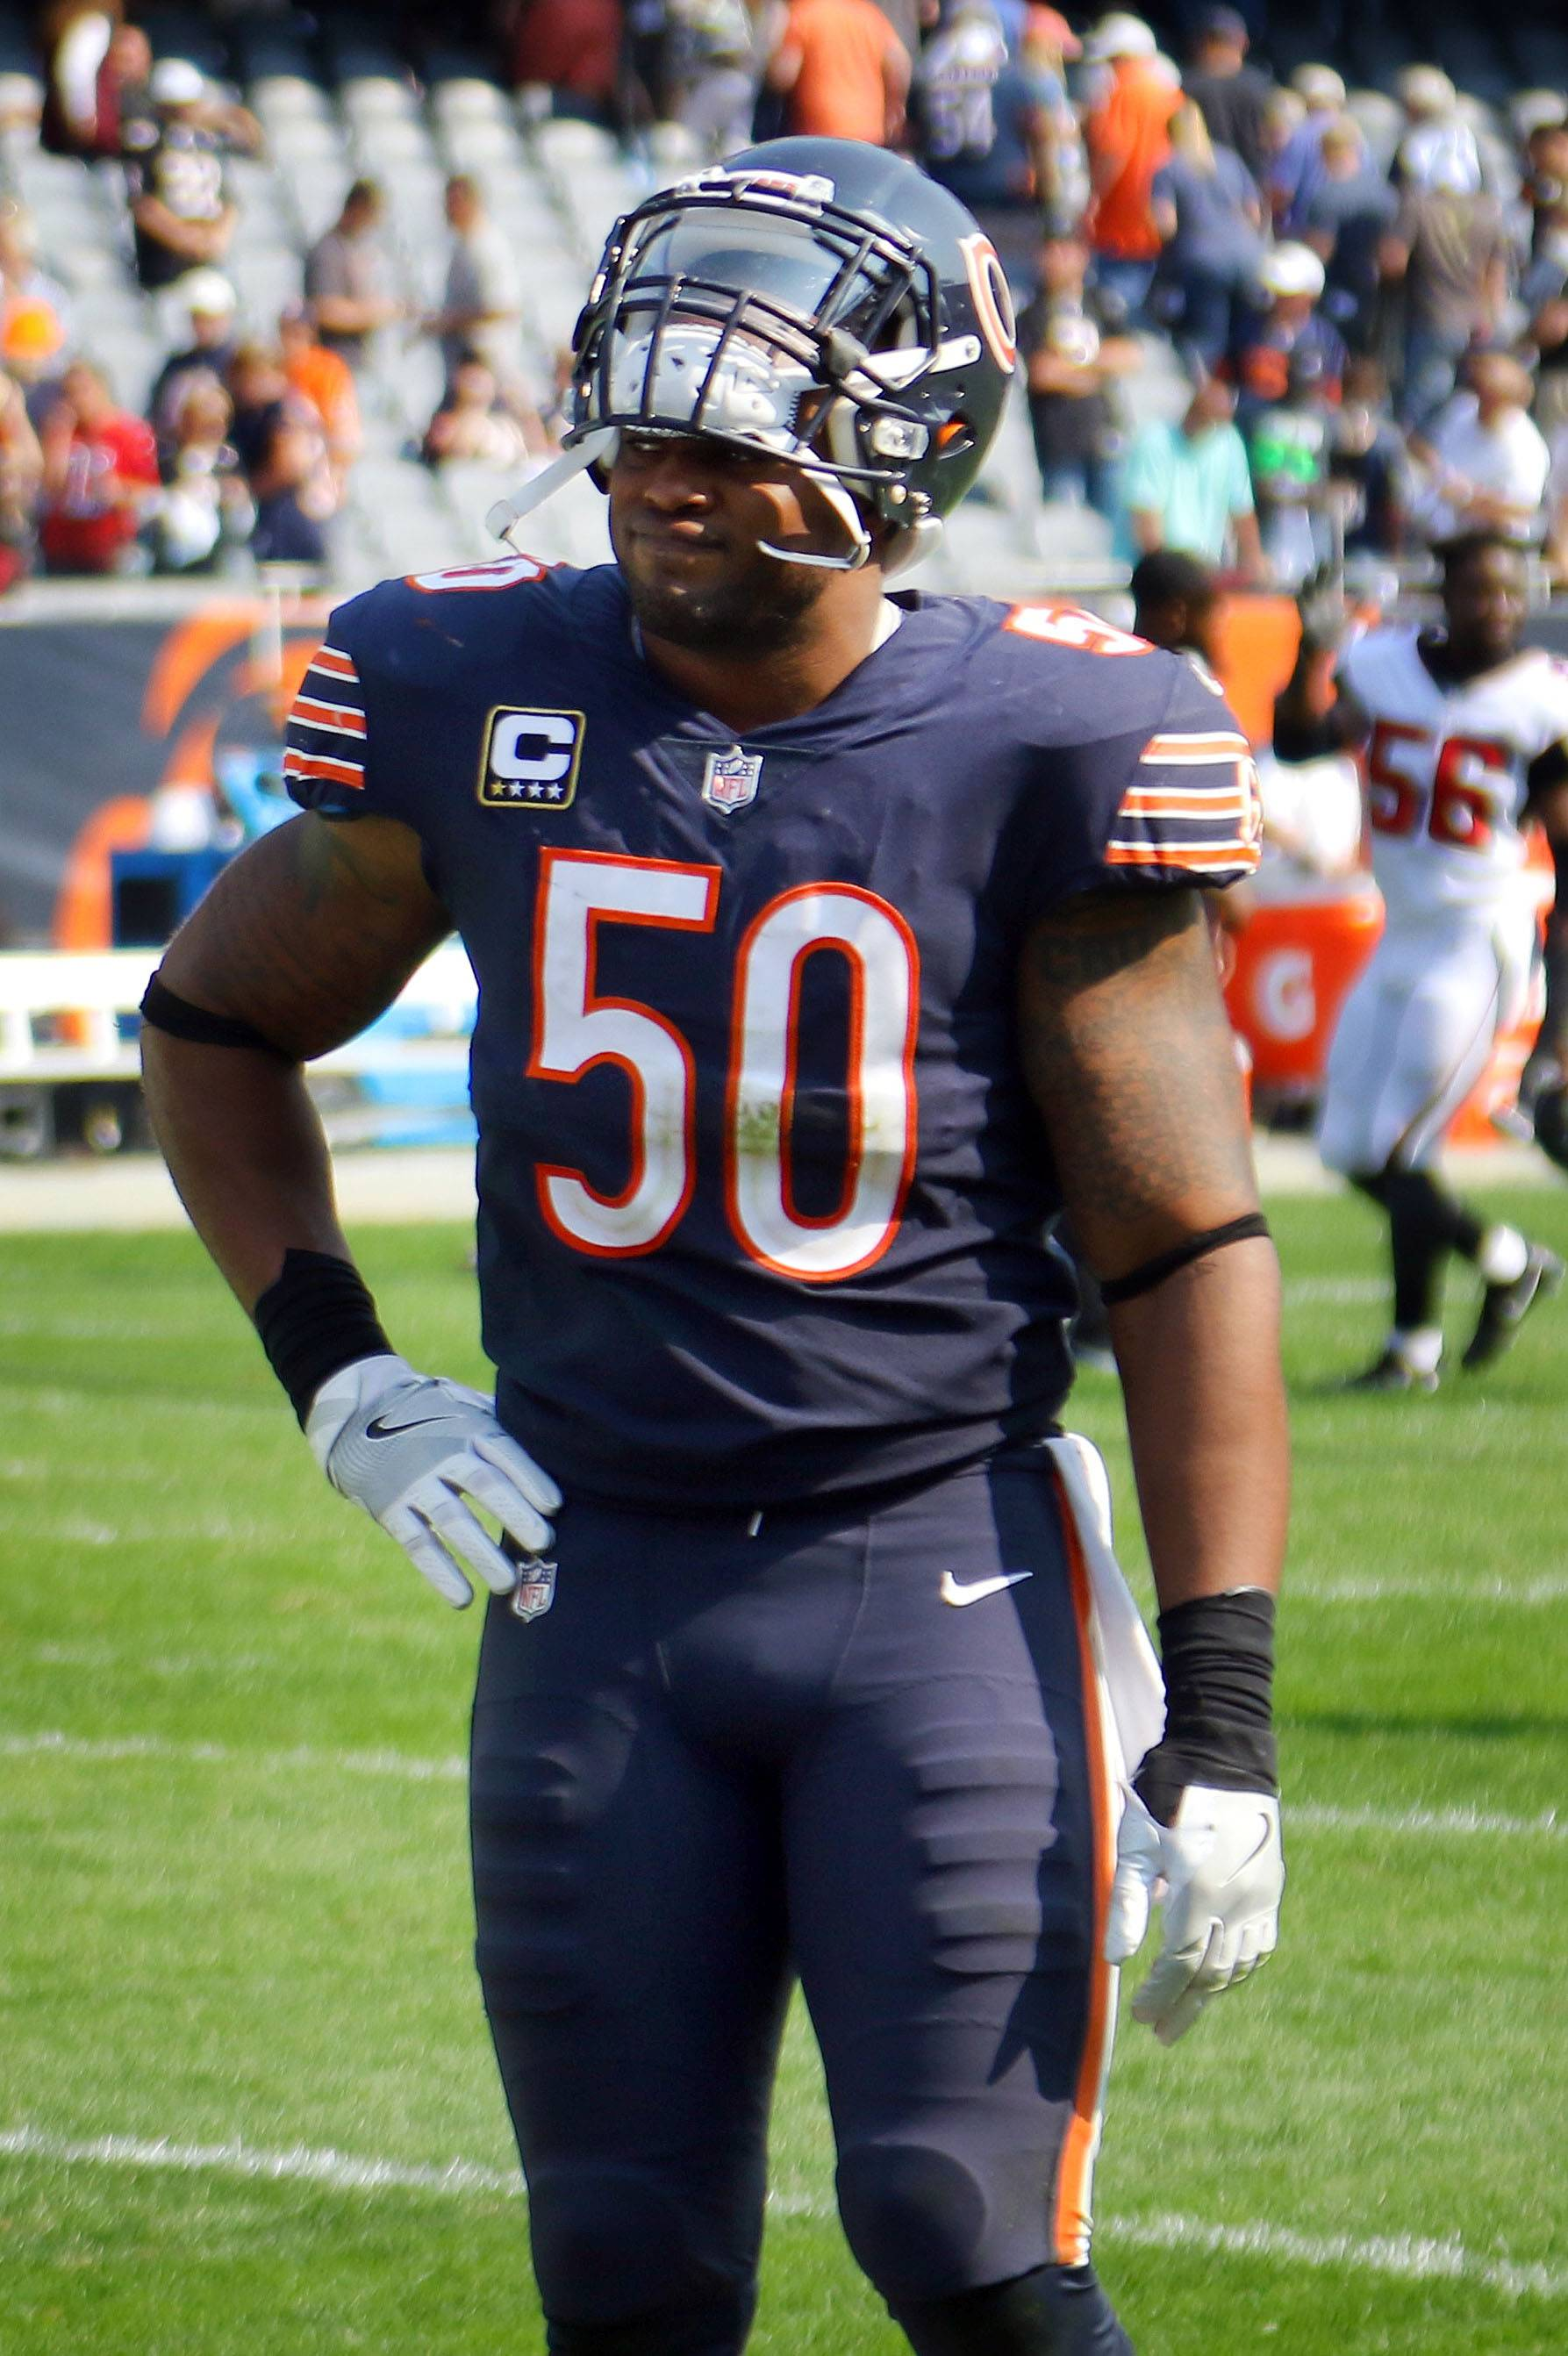 Chicago Bears inside linebacker Jerrell Freeman lead all players Sunday with 10 tackles, but he suffered some injuries in the process. Freeman had a self-reported concussion after the game and a chest injury.